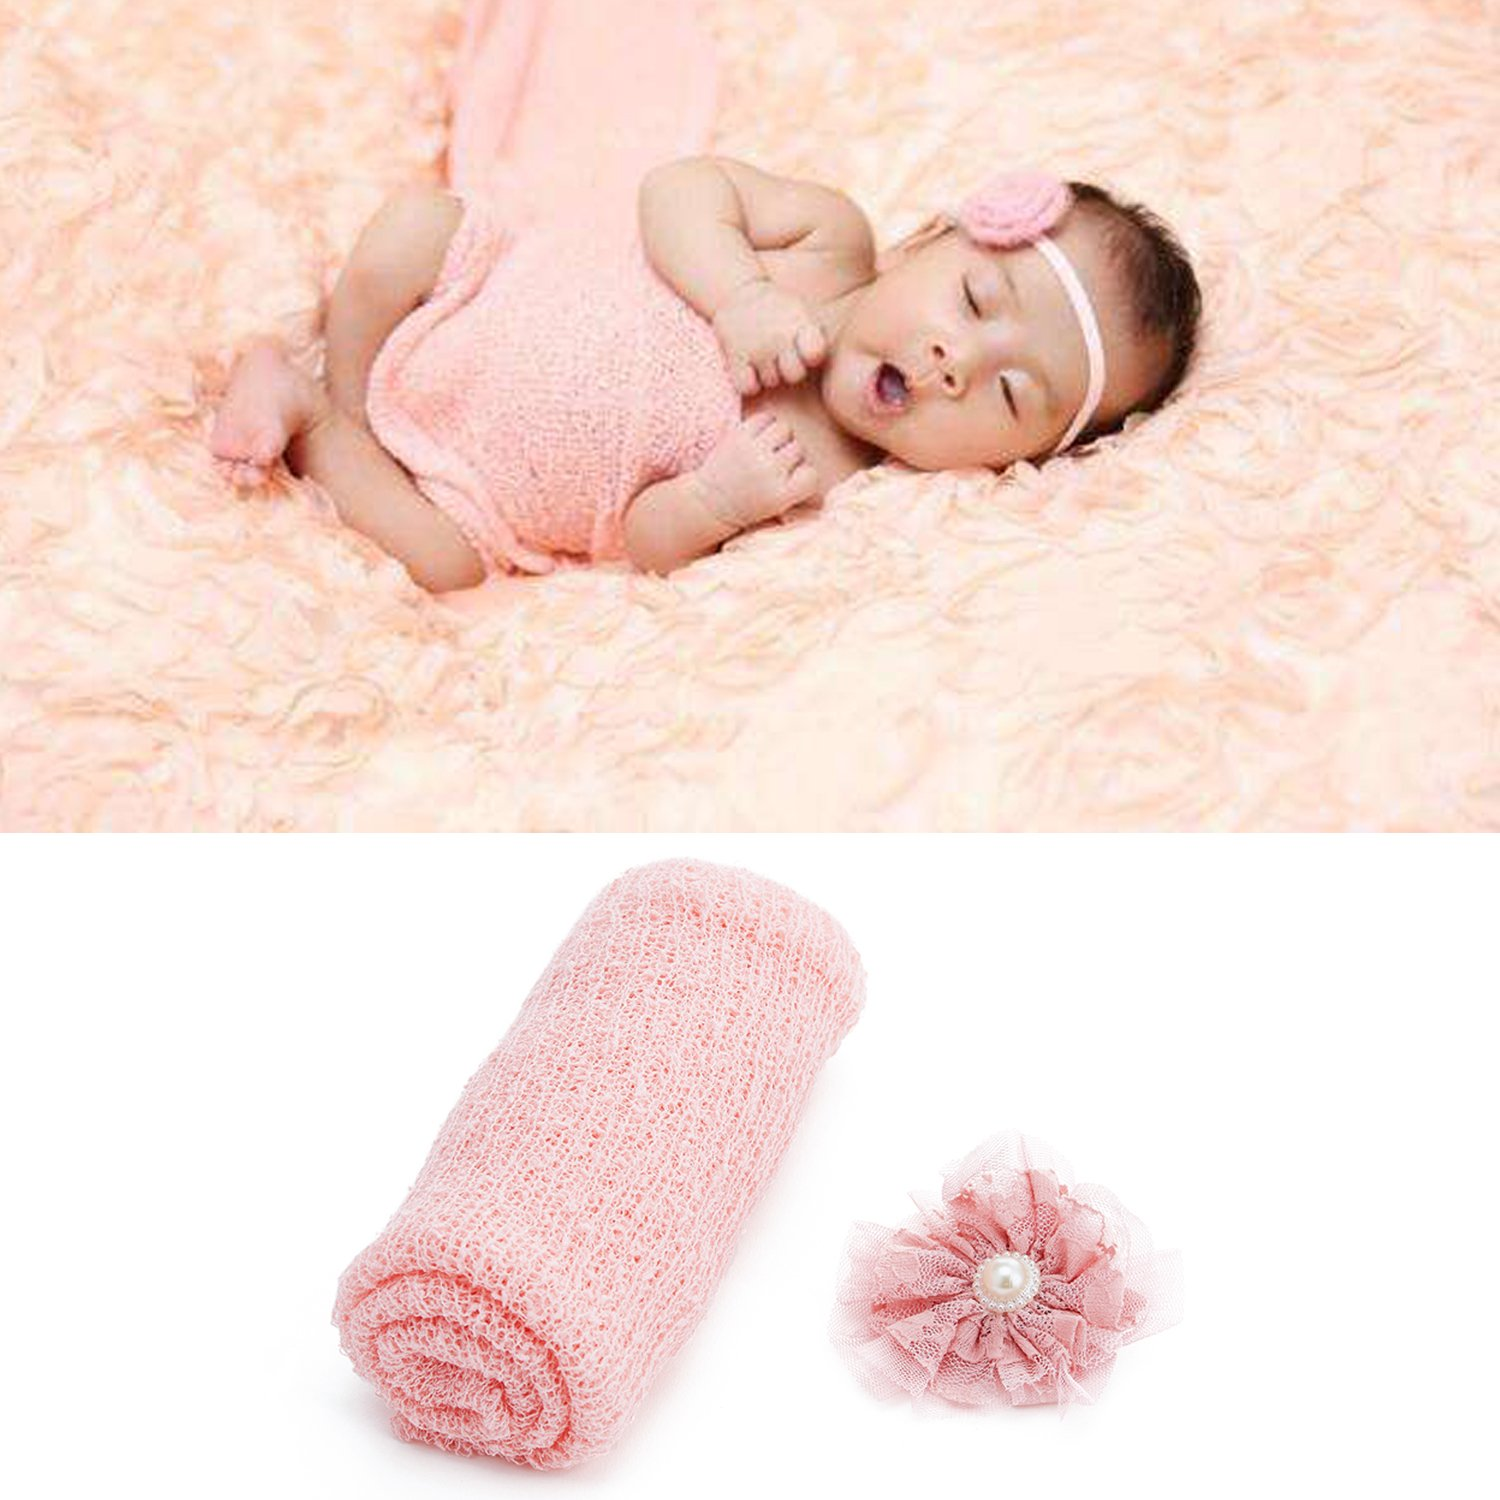 UIMagic Newborn Baby Photography Props - Long Ripple Wrap Blanket and Lace Beads Headband